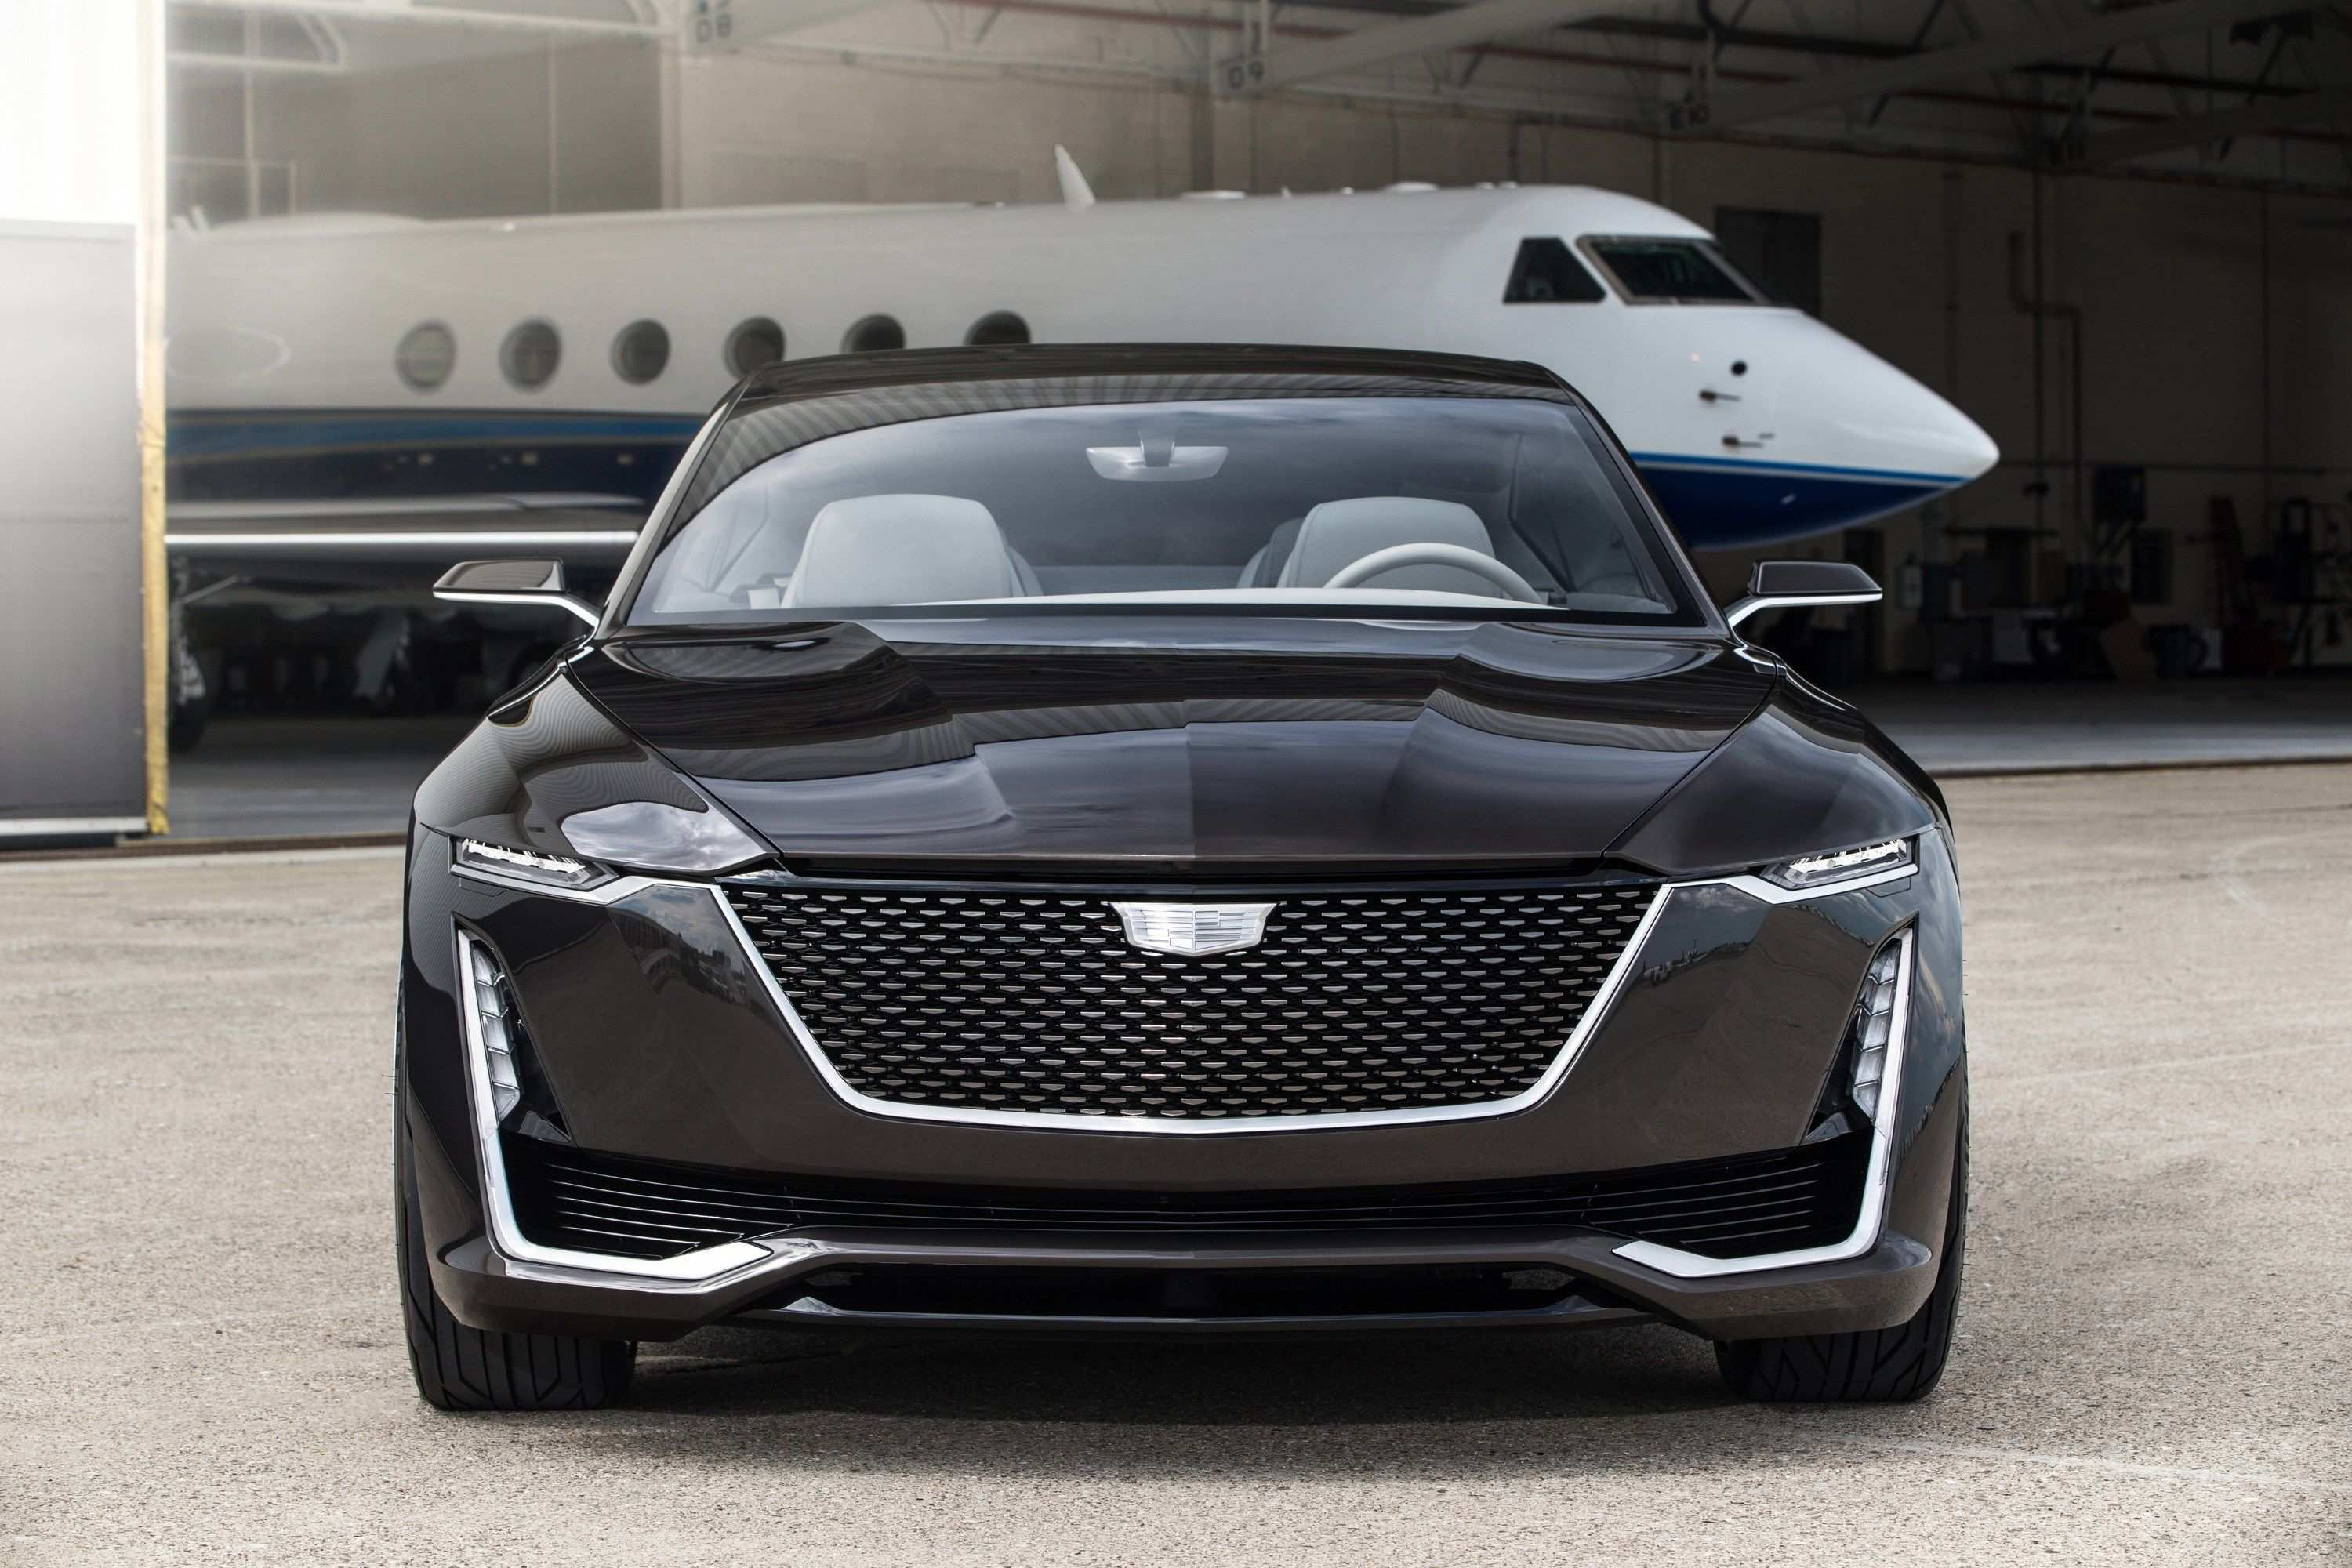 23 Best Review 2020 Cadillac Cts V Concept by 2020 Cadillac Cts V